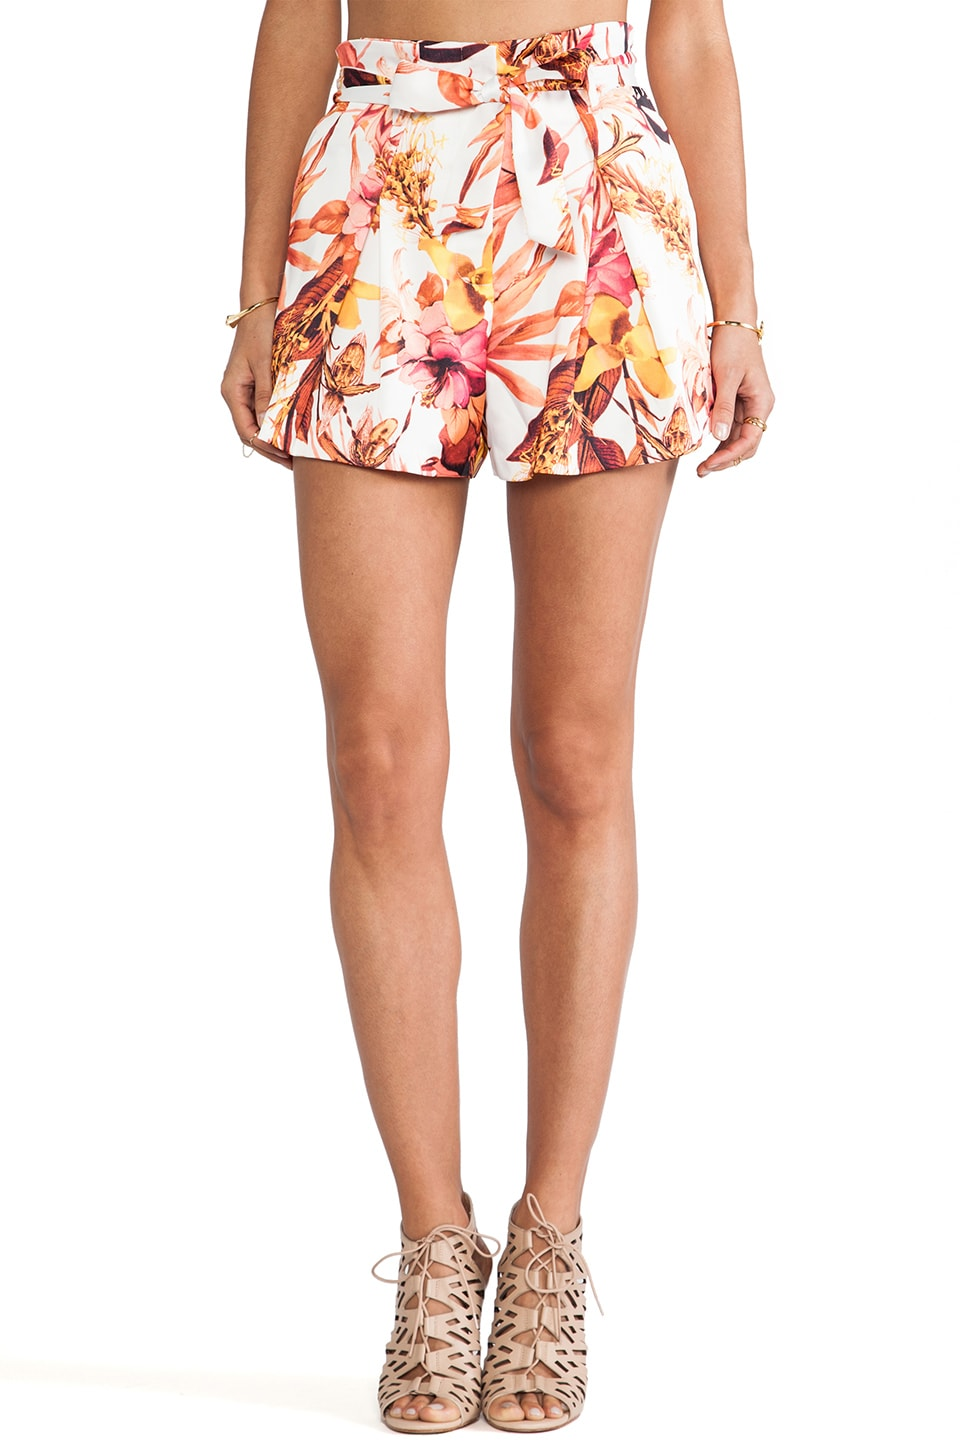 C/MEO Hybrid Short in Tropic Print